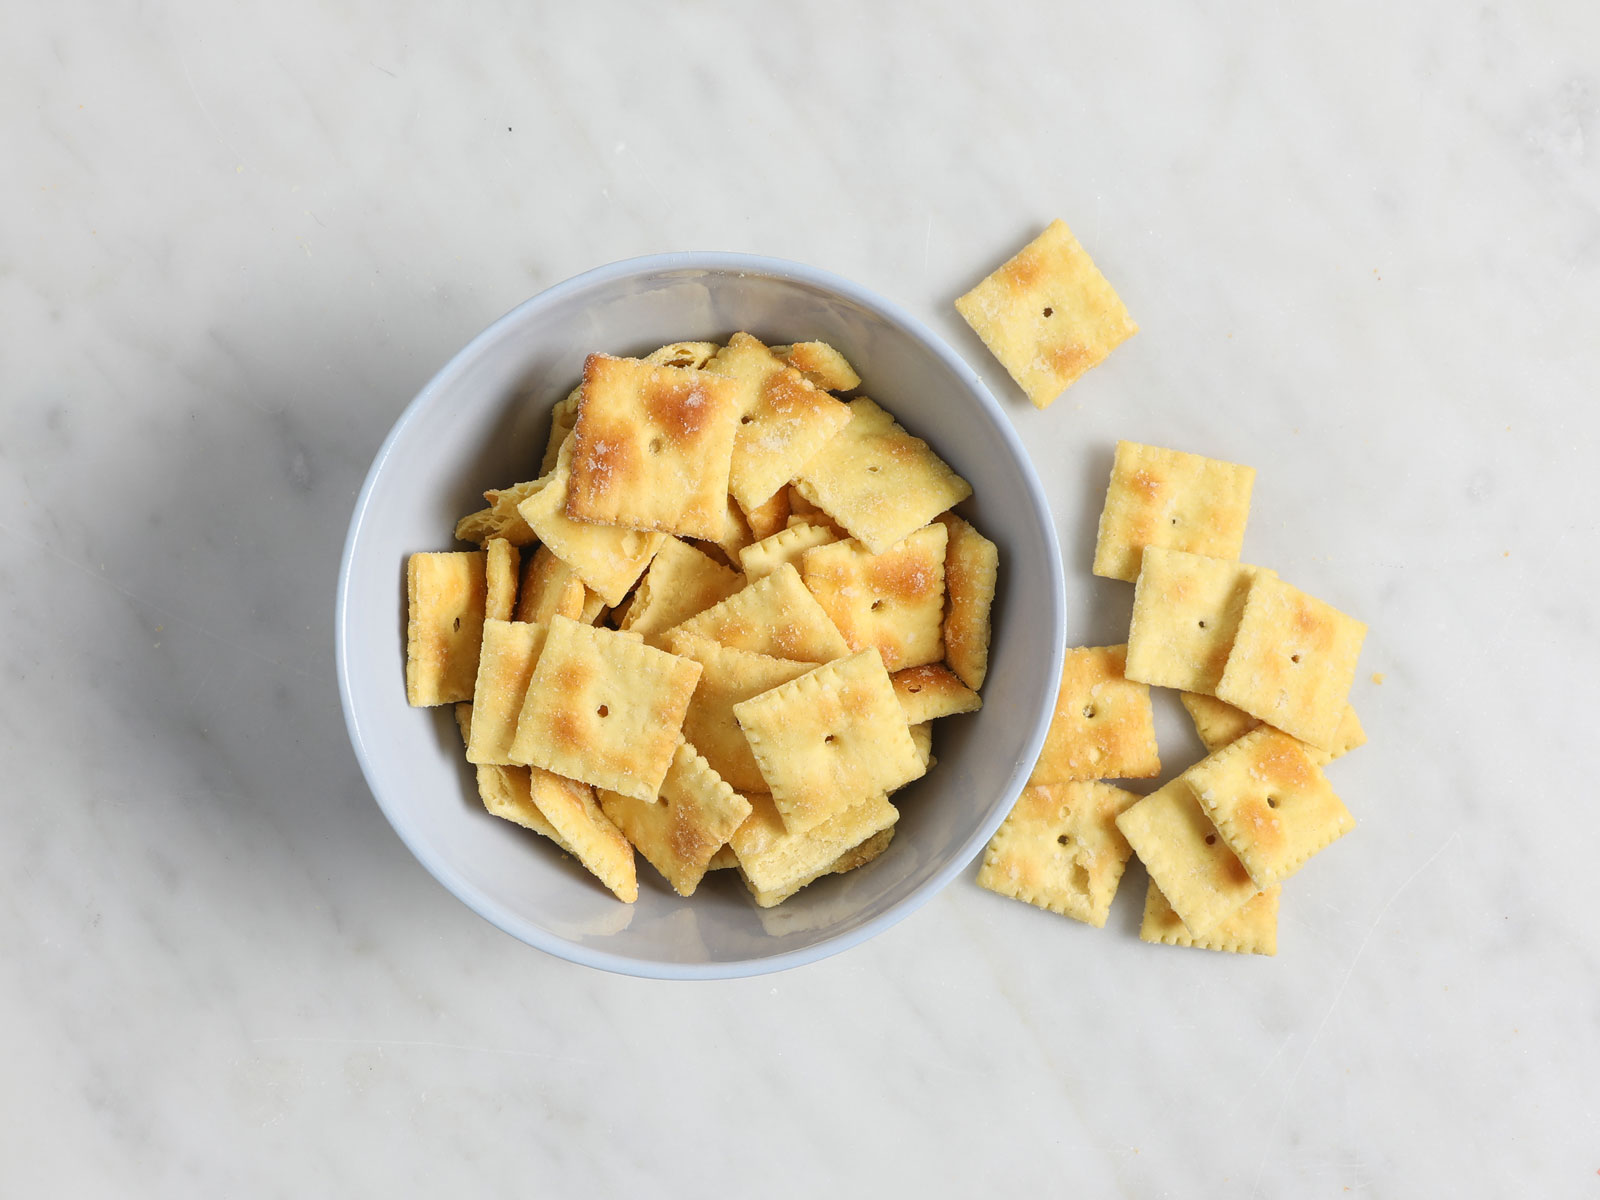 Reduced Fat White Cheddar Cheez-Its